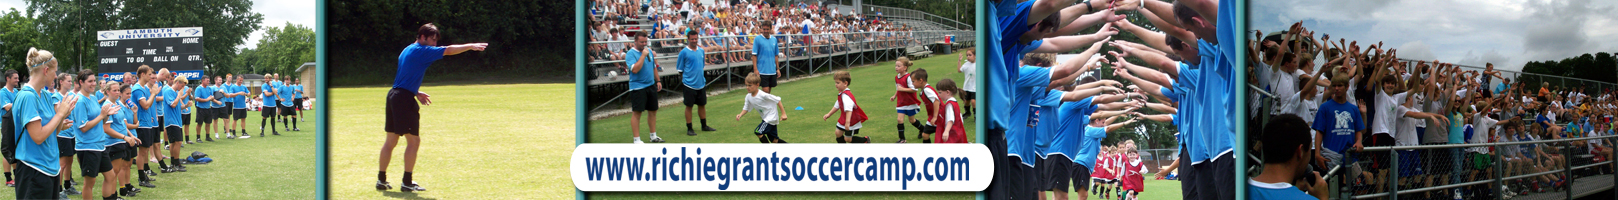 Richie Grant Soccer Camp